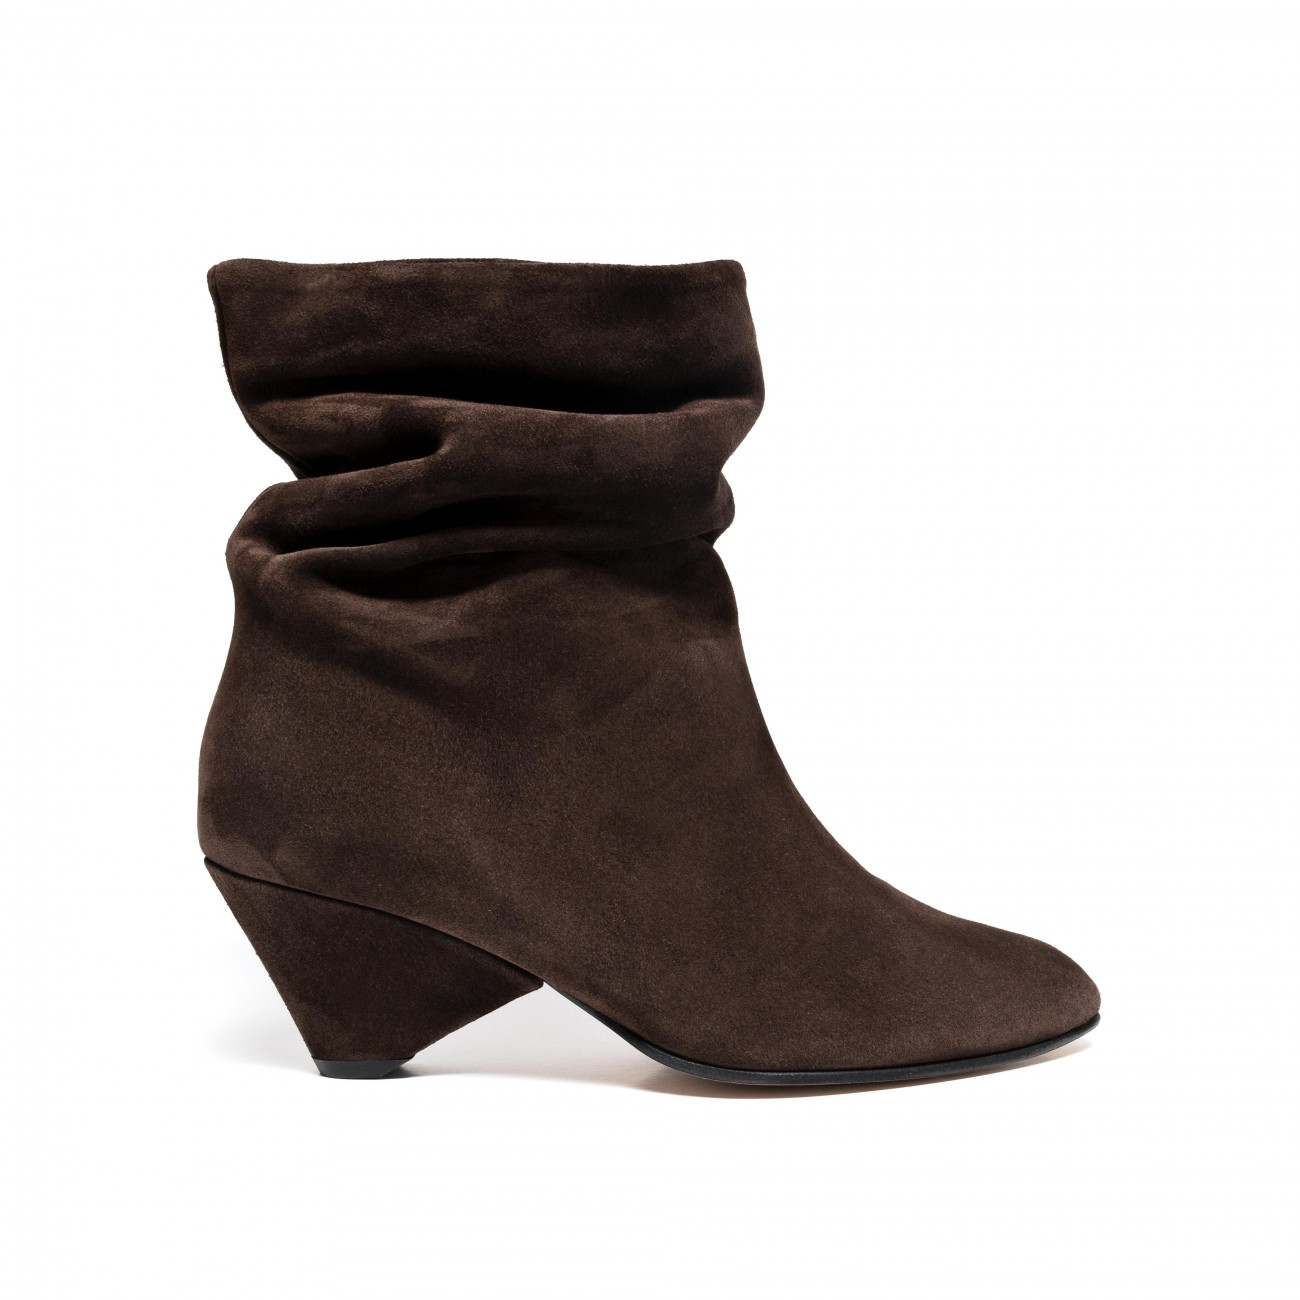 Vully suede coffee